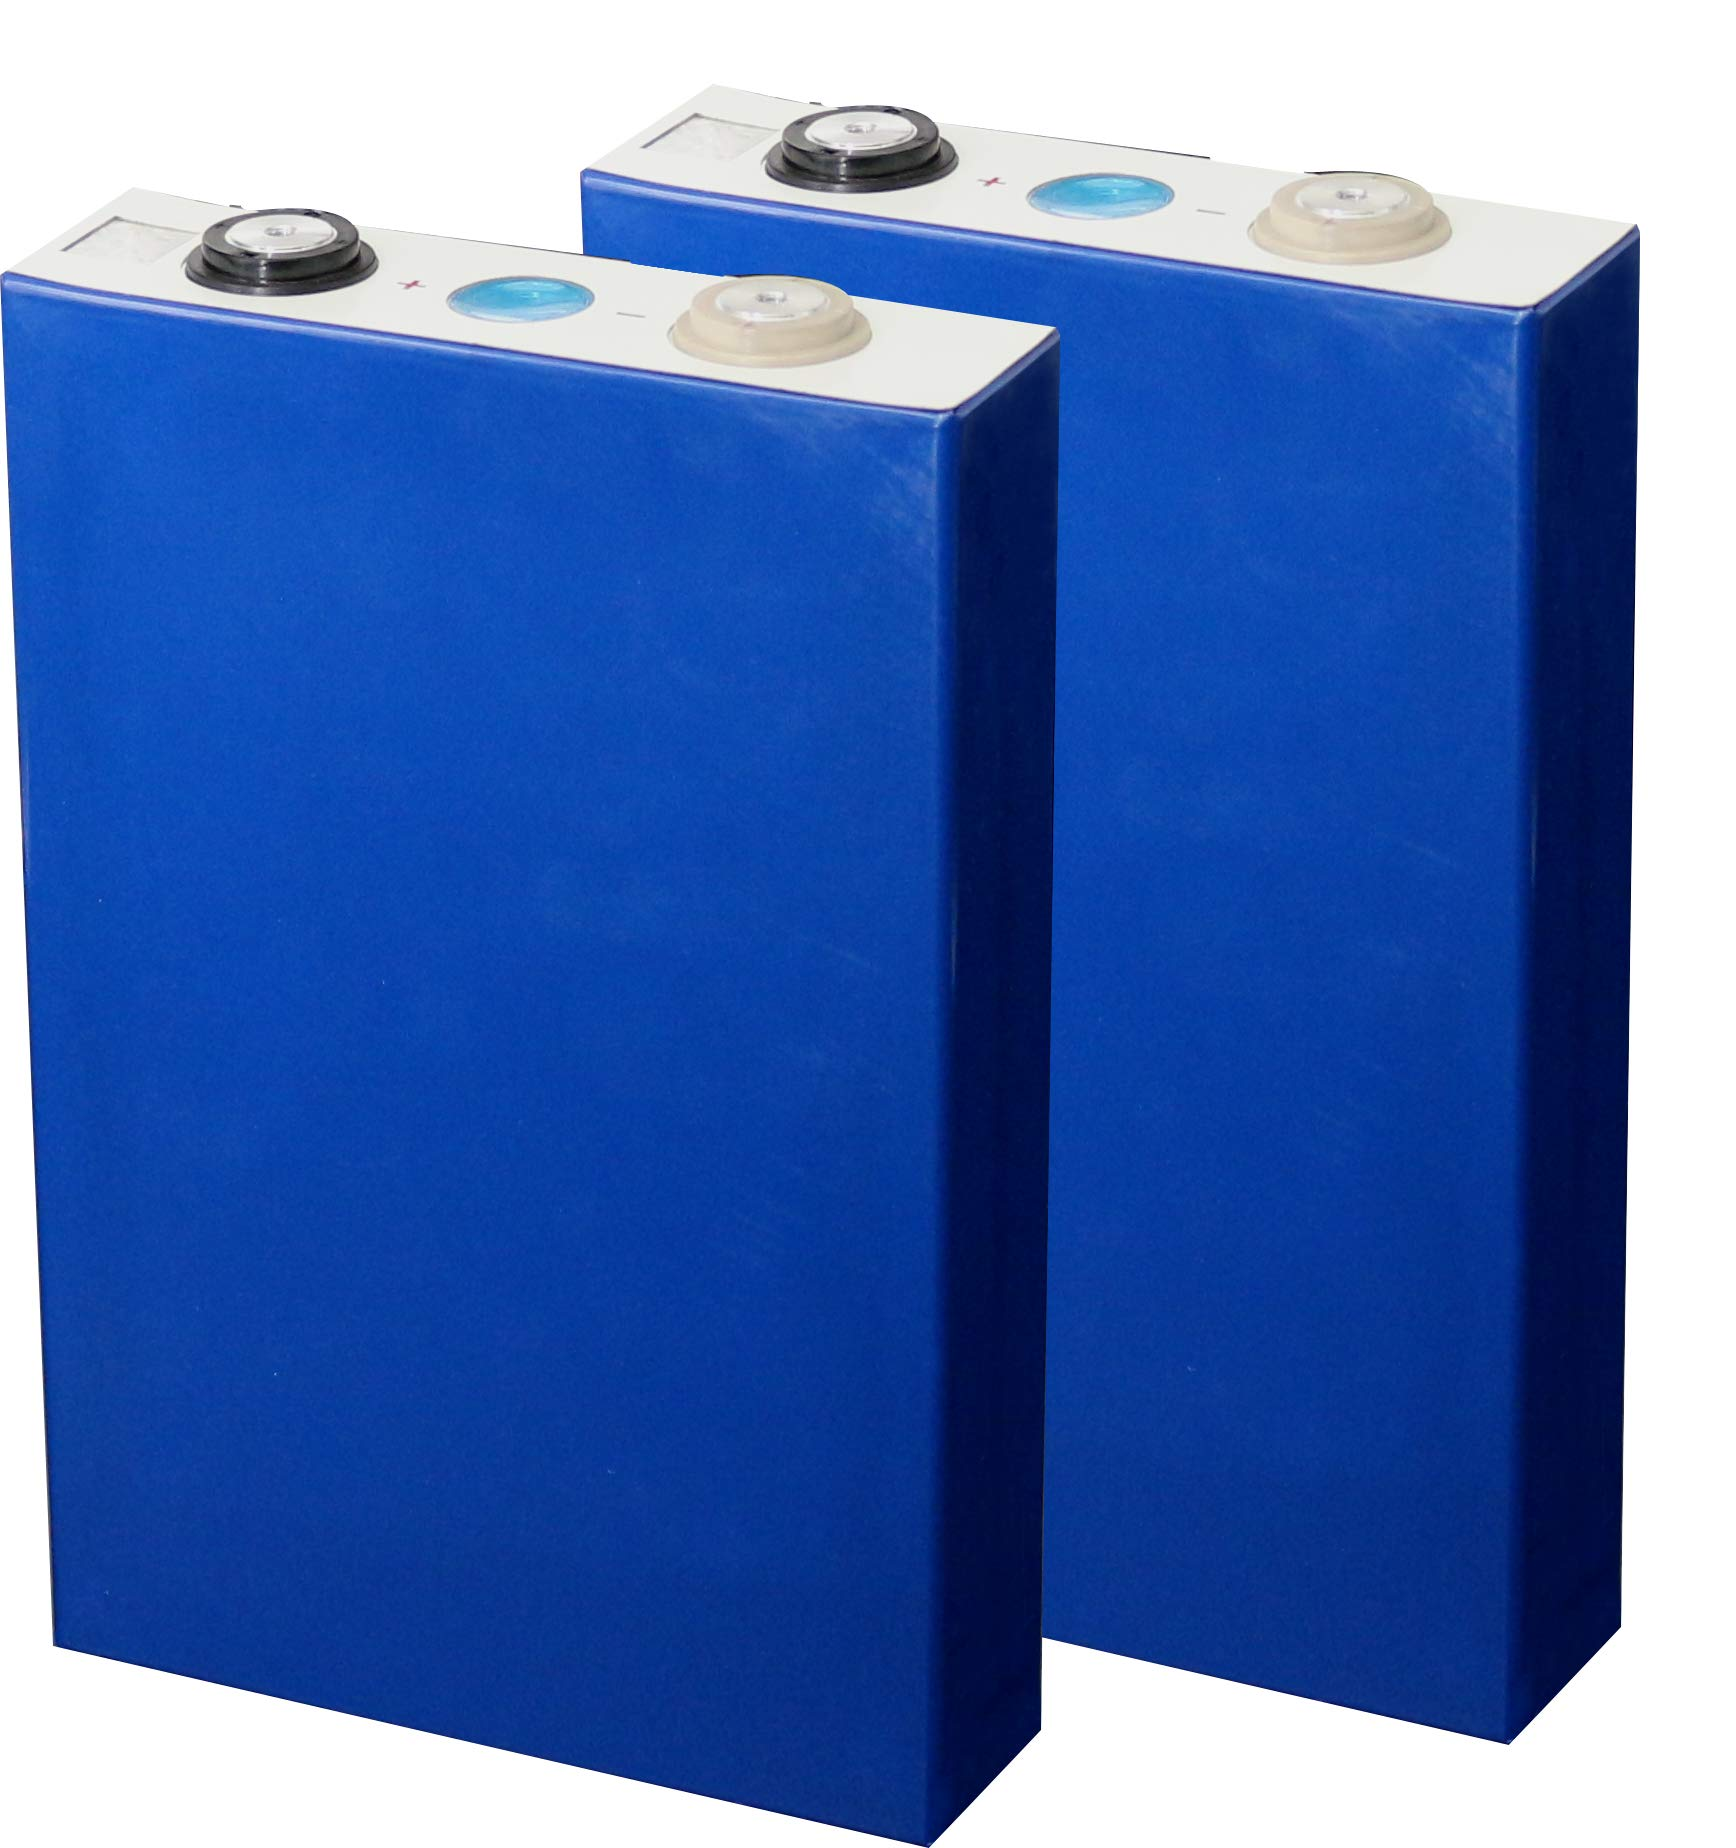 2x Cells Eastup Lithium Iron Phosphate (LiFePo4) Battery Cells 3.2V-105AH 336Wh 10 Years Lifetime.